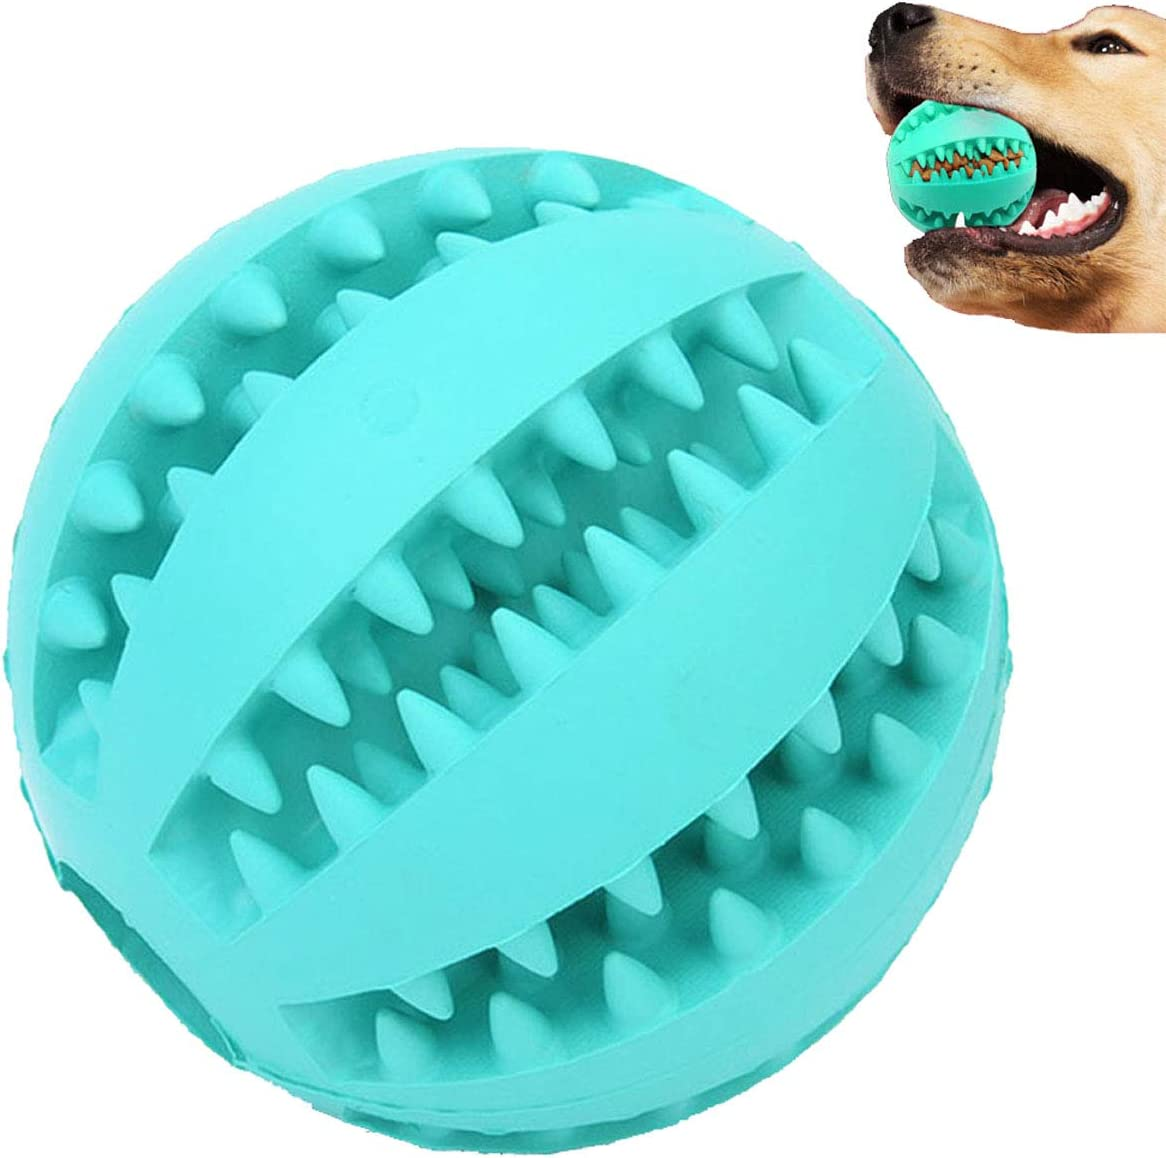 Sunglow Dog Toy Ball, Nontoxic Bite Resistant Toy Ball for Pet Dogs Puppy Cat, Dog Pet Food Treat Feeder Chew Tooth Cleaning Ball